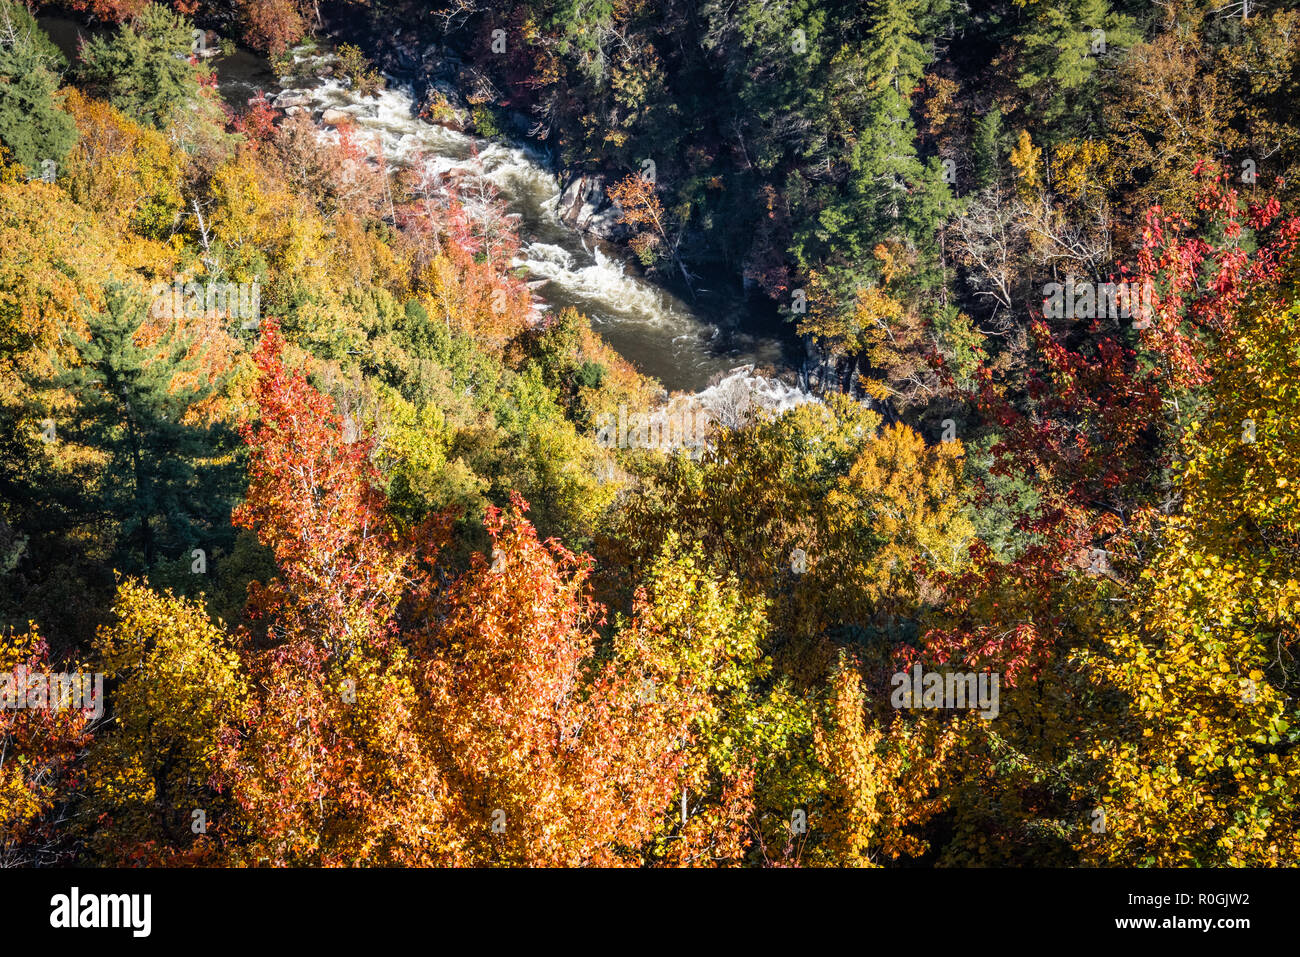 Autumn foliage frames the raging water of the Tallulah River during a whitewater release at Tallulah Gorge State Park in Northeast Georgia. (USA) - Stock Image